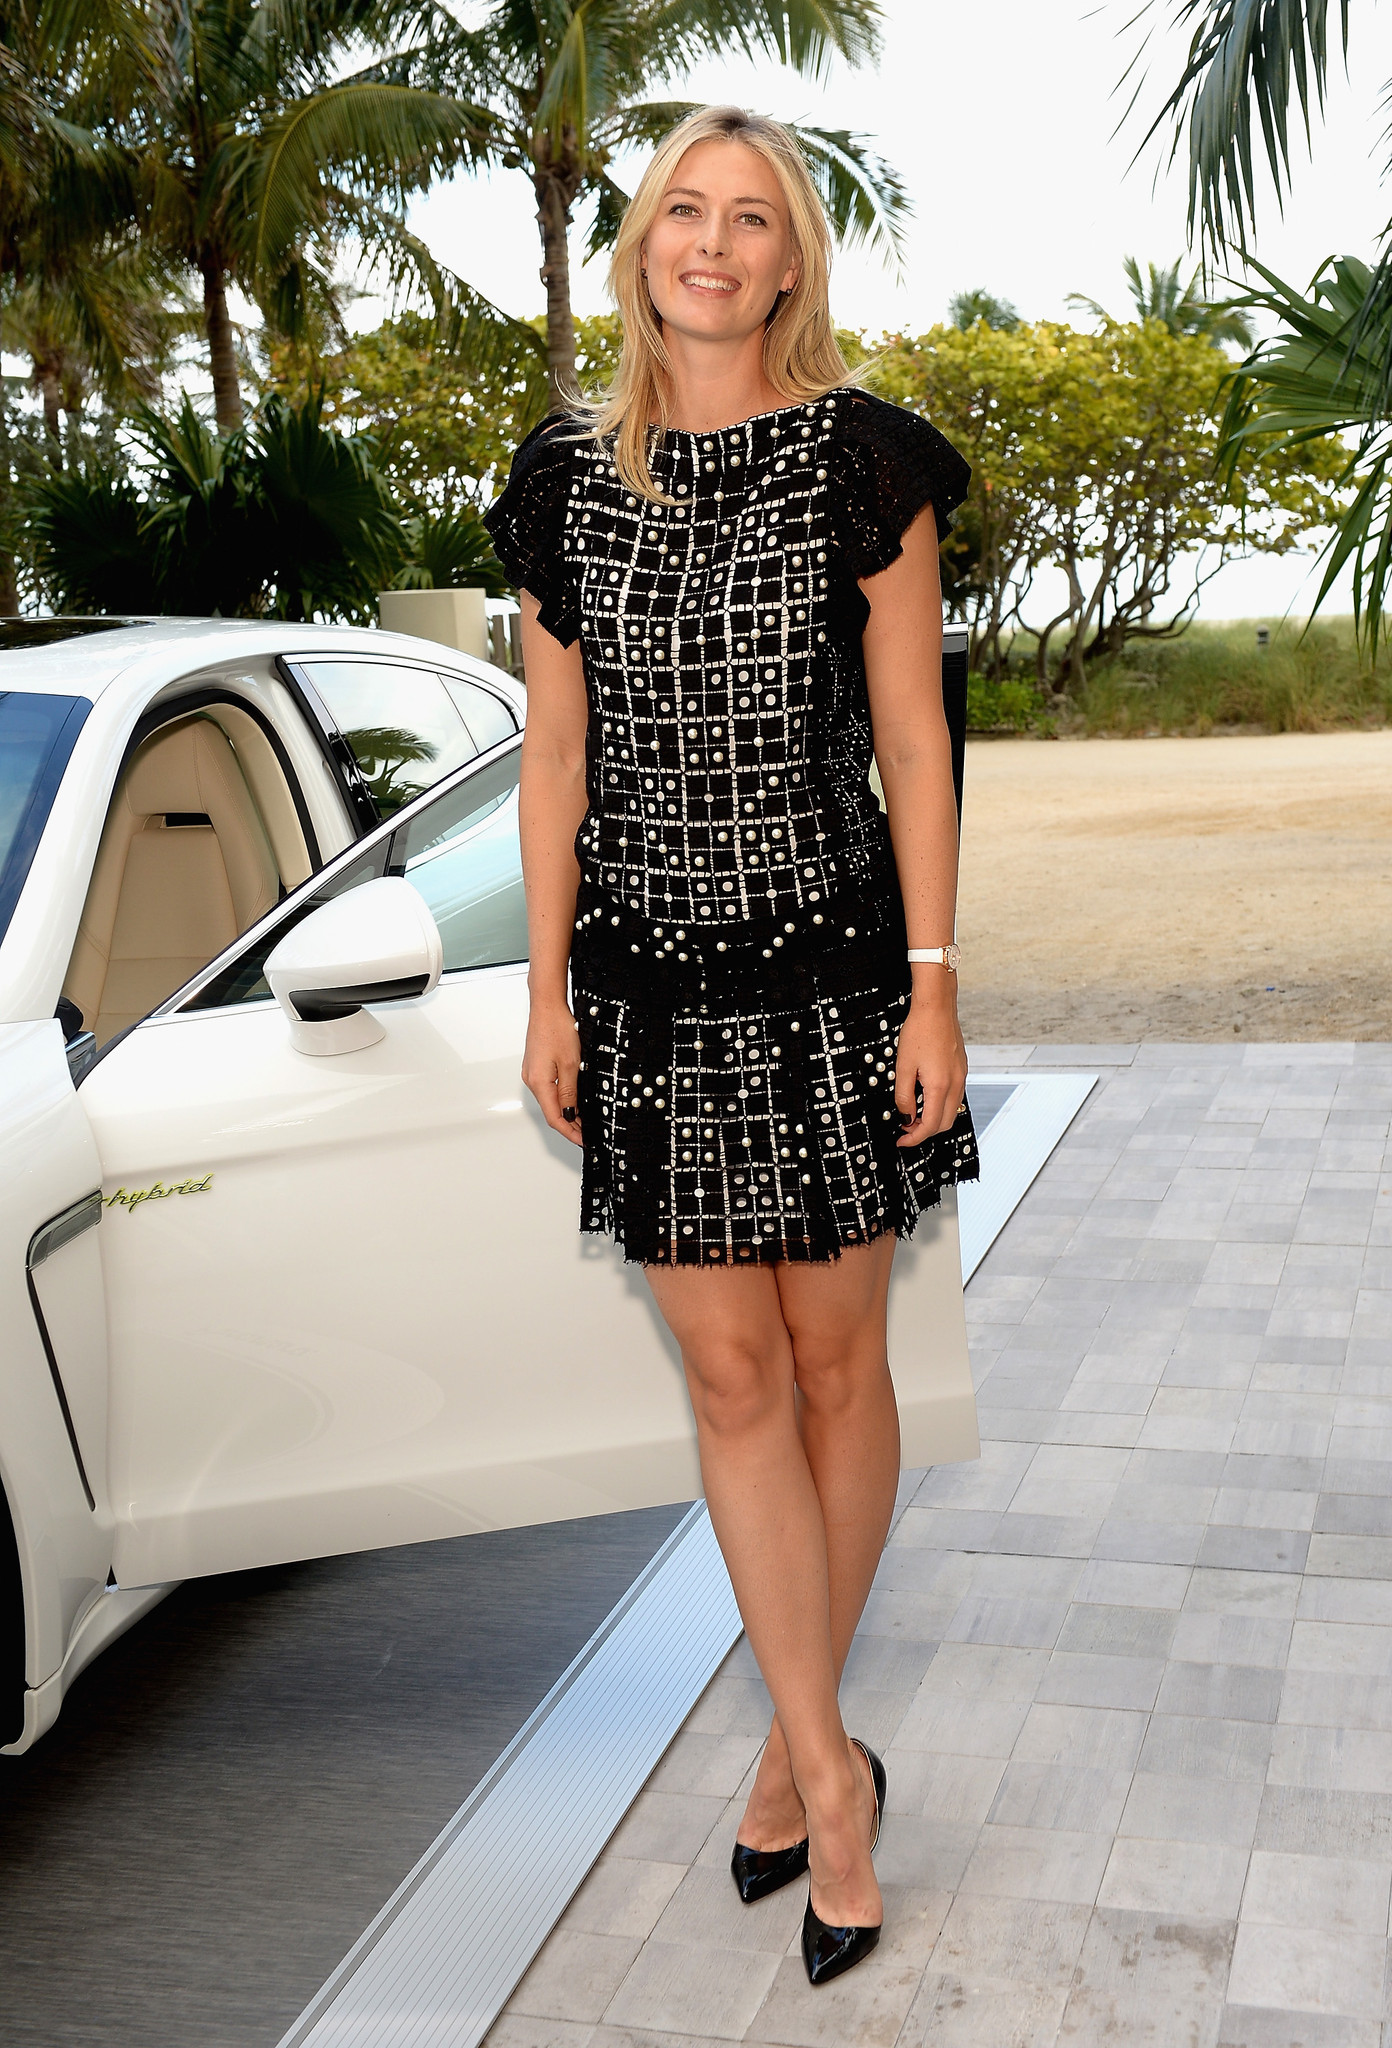 Celeb-spotting around South Florida - Maria Sharapova